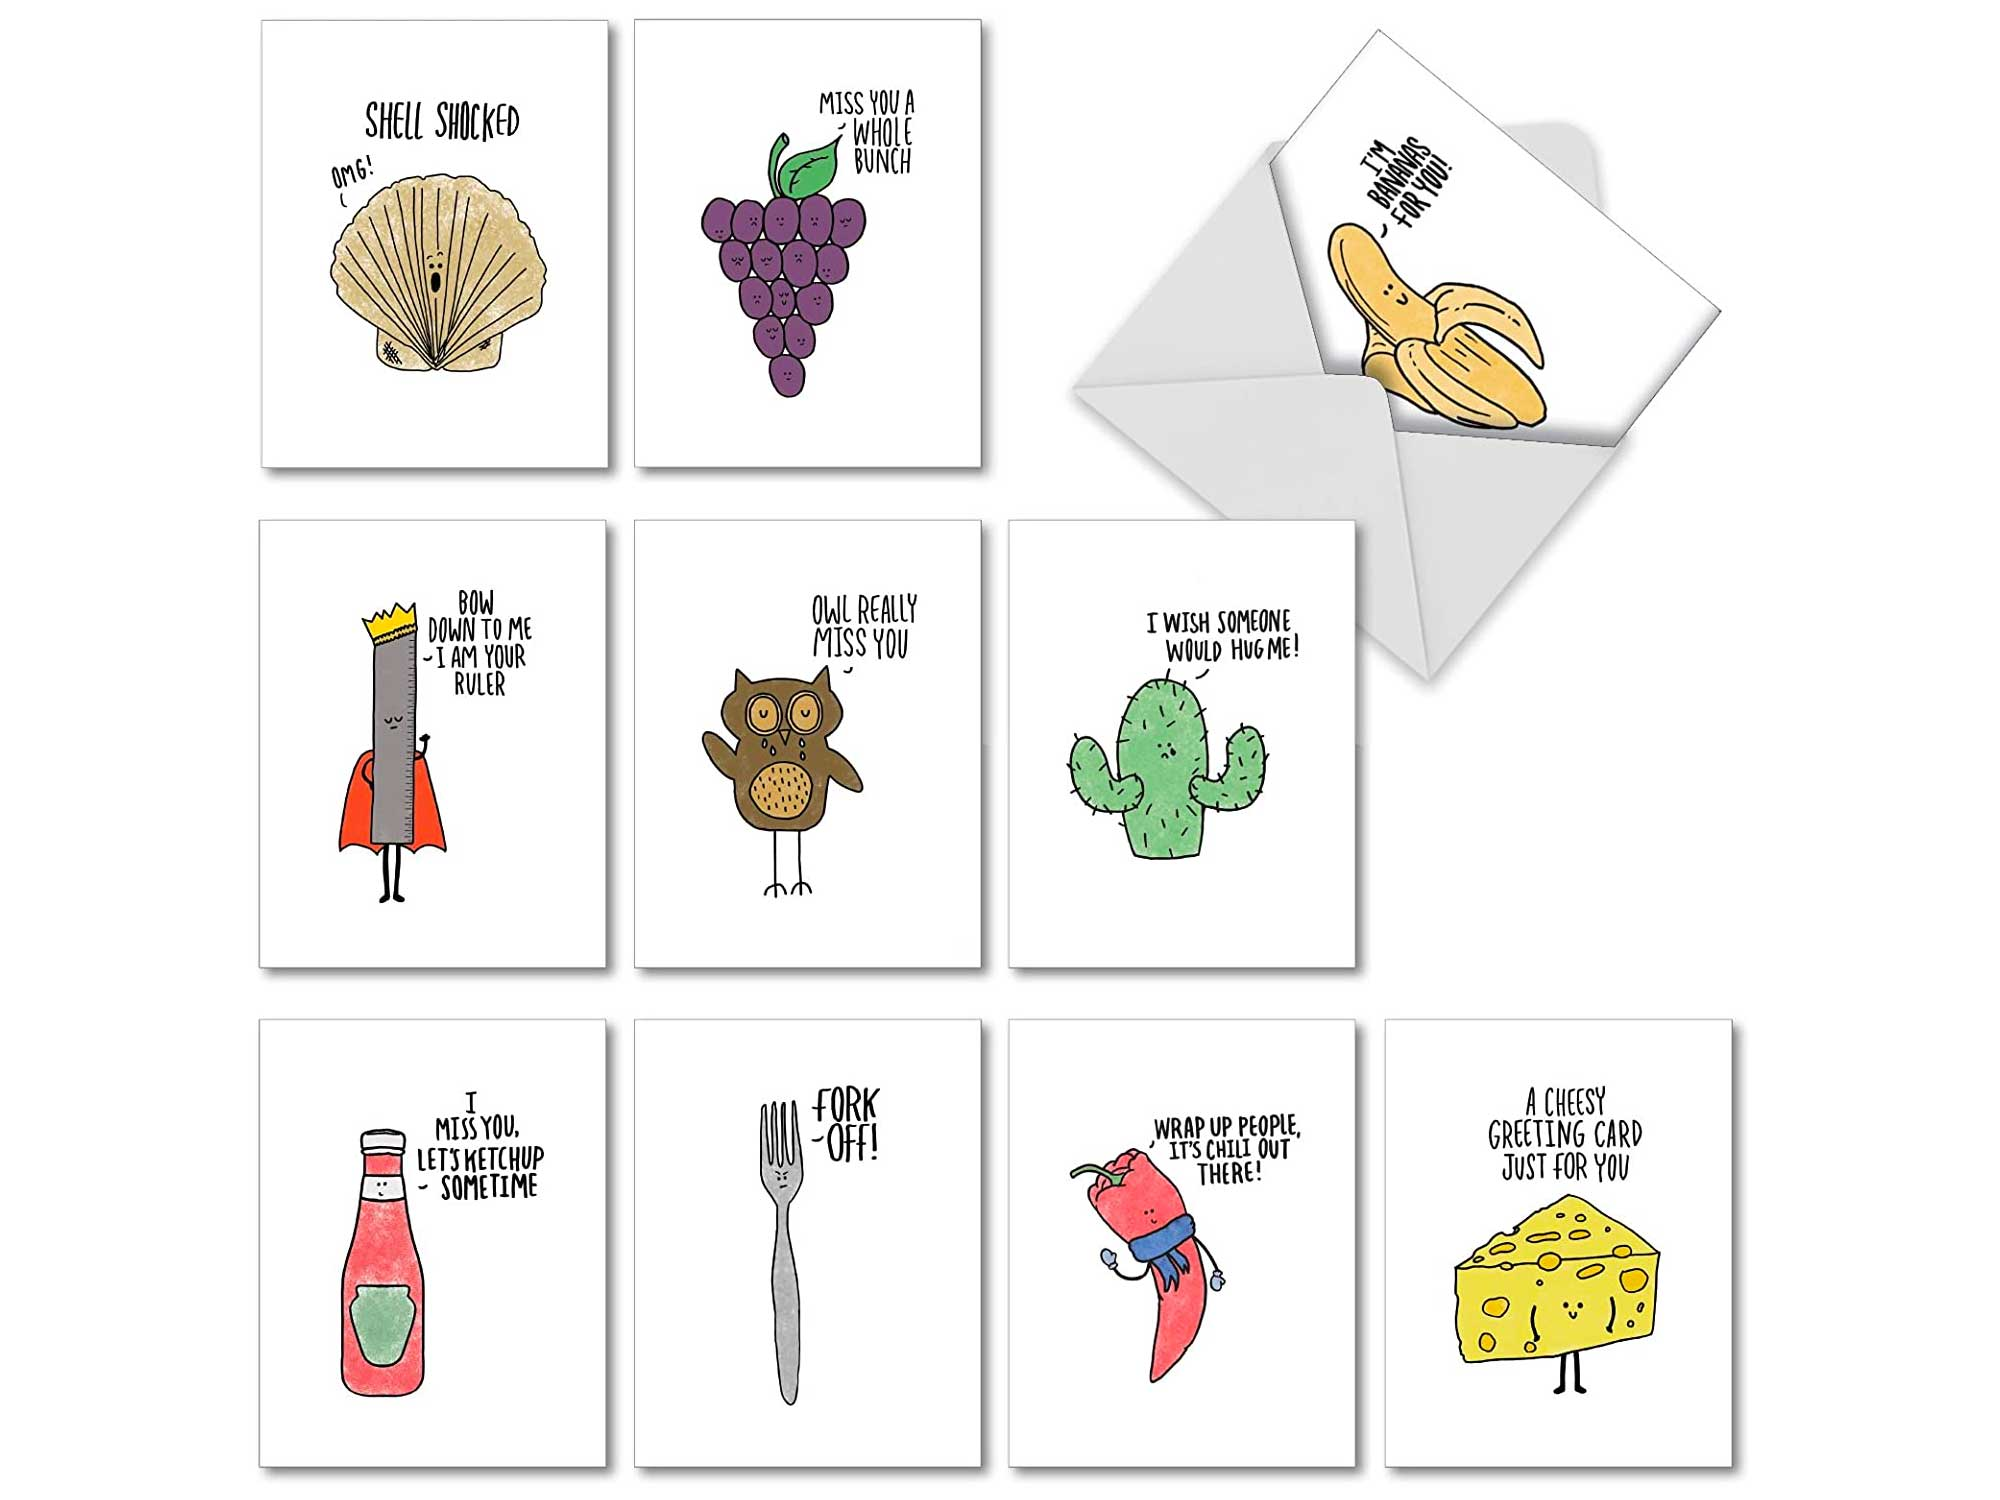 Fun Puns Blank Note Cards (Box of 10) Funny All Occasion Greeting Card with Envelope Cartoon Animated Stationery for Clever Birthday, Business, and Well Wishes Pun Notecards